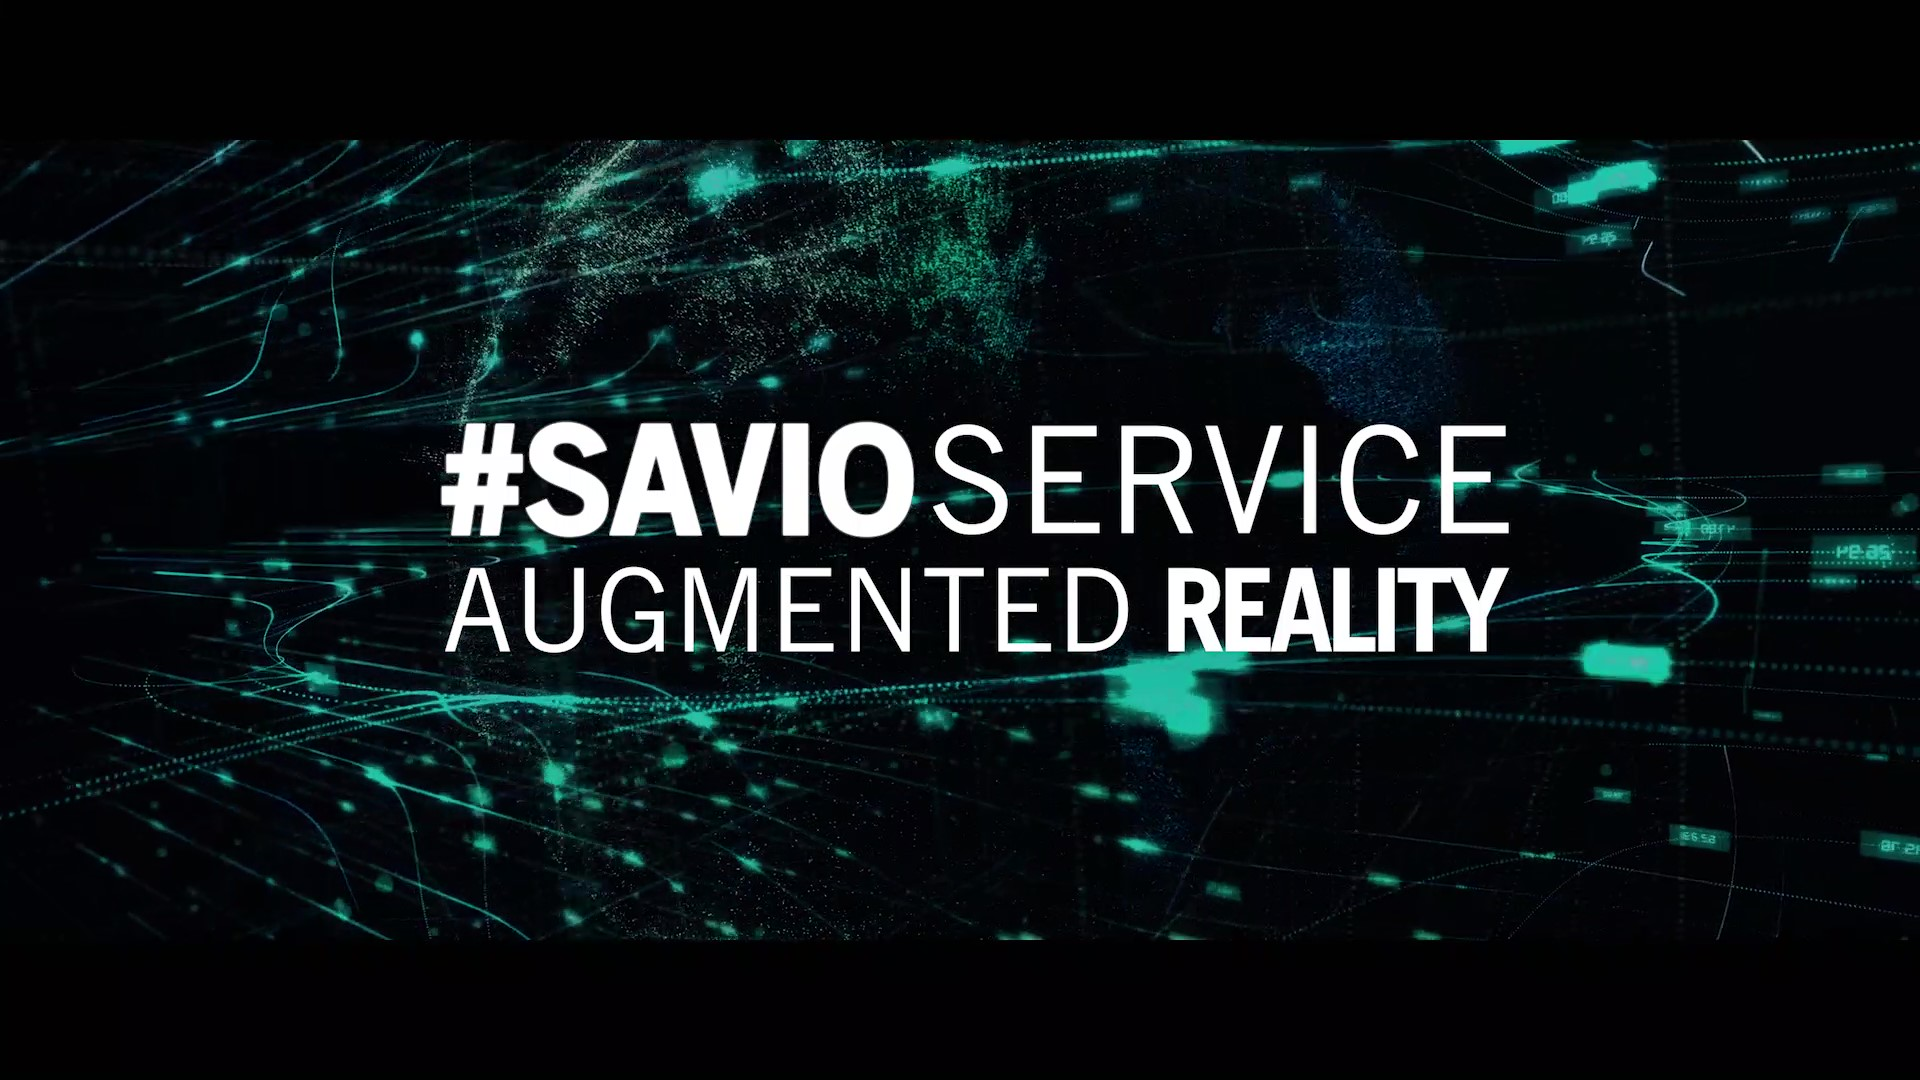 Savio Service - Augmented Reality